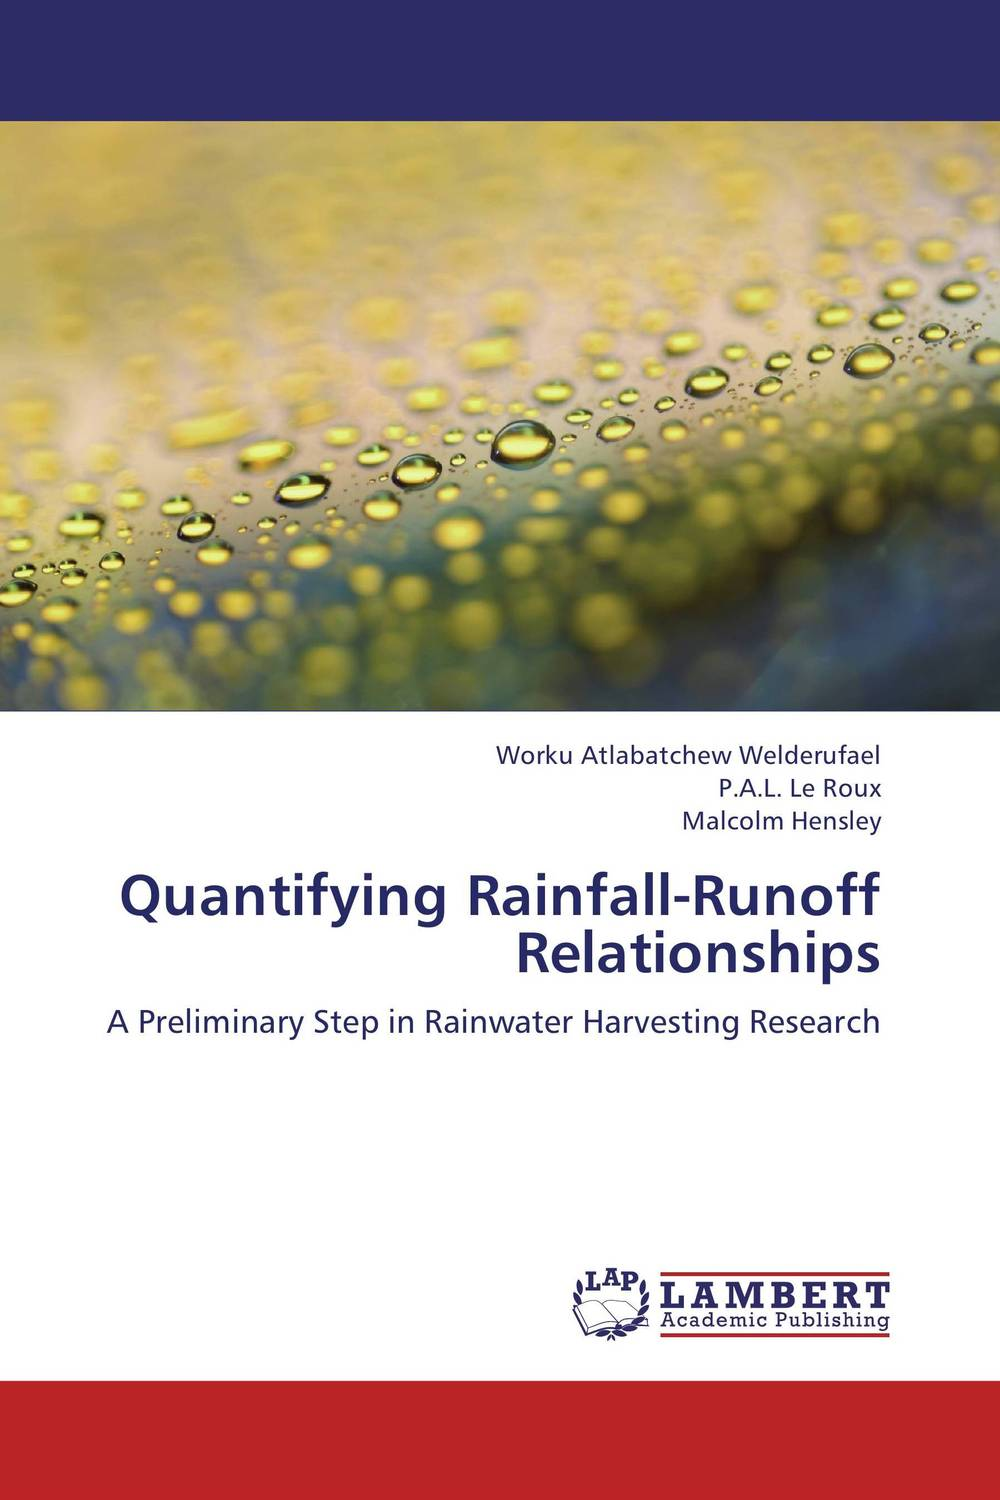 Quantifying Rainfall-Runoff Relationships farm level adoption of water system innovations in semi arid areas